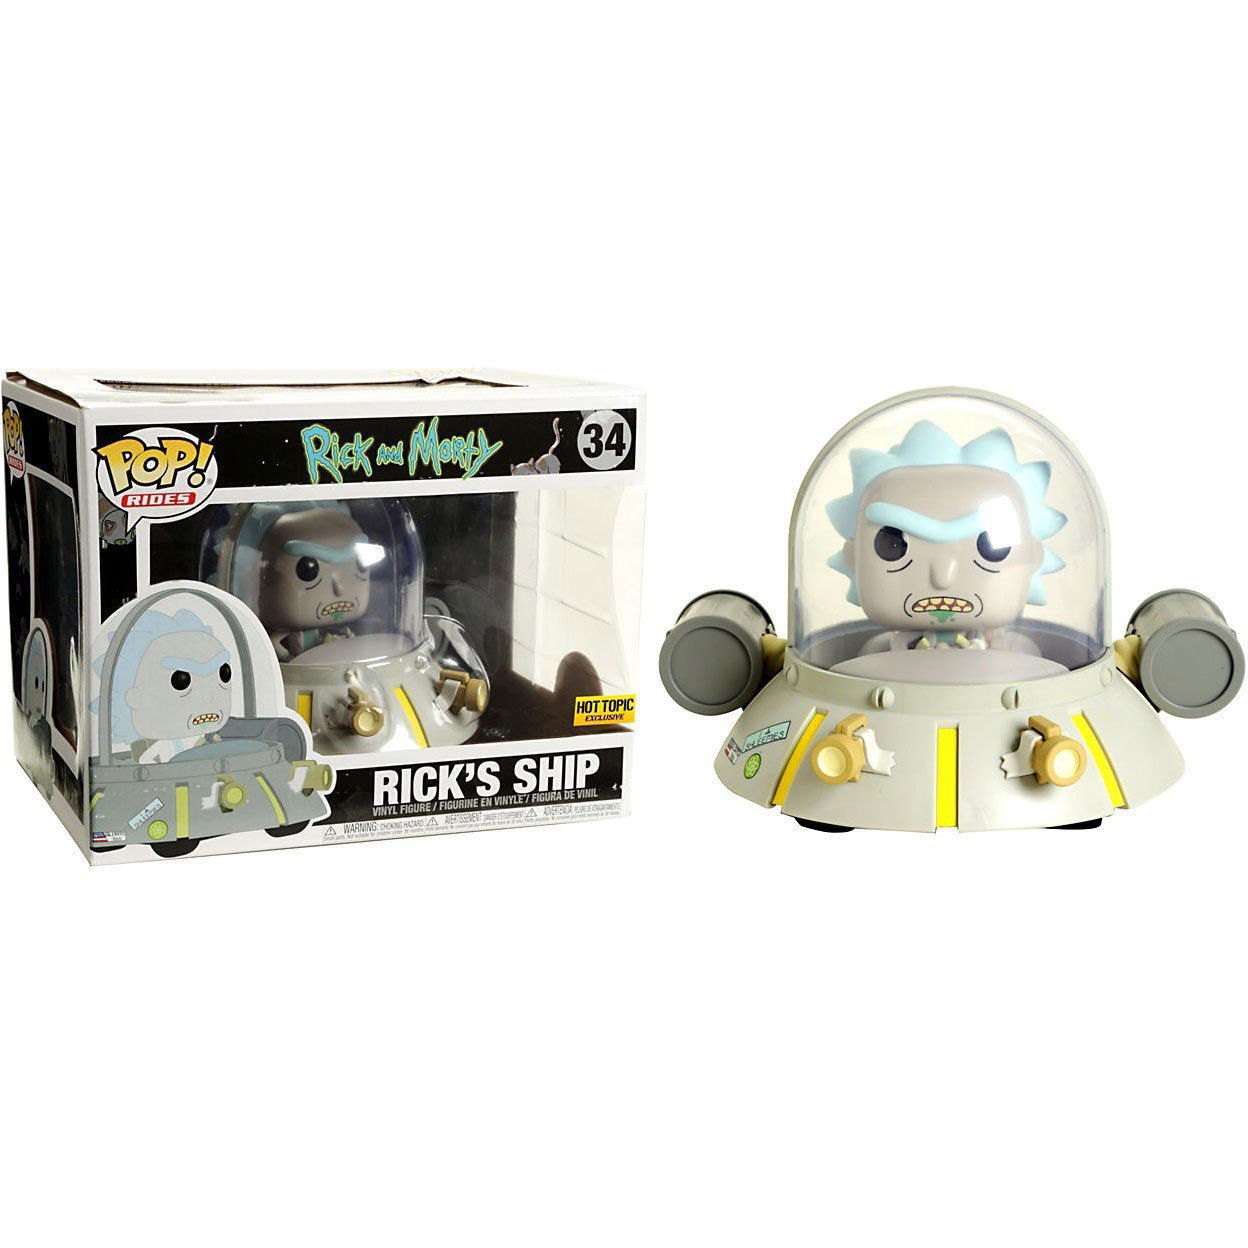 Primary image for Rick and Morty Funko POP! Hot Topic Exclusive - Rick's Ship